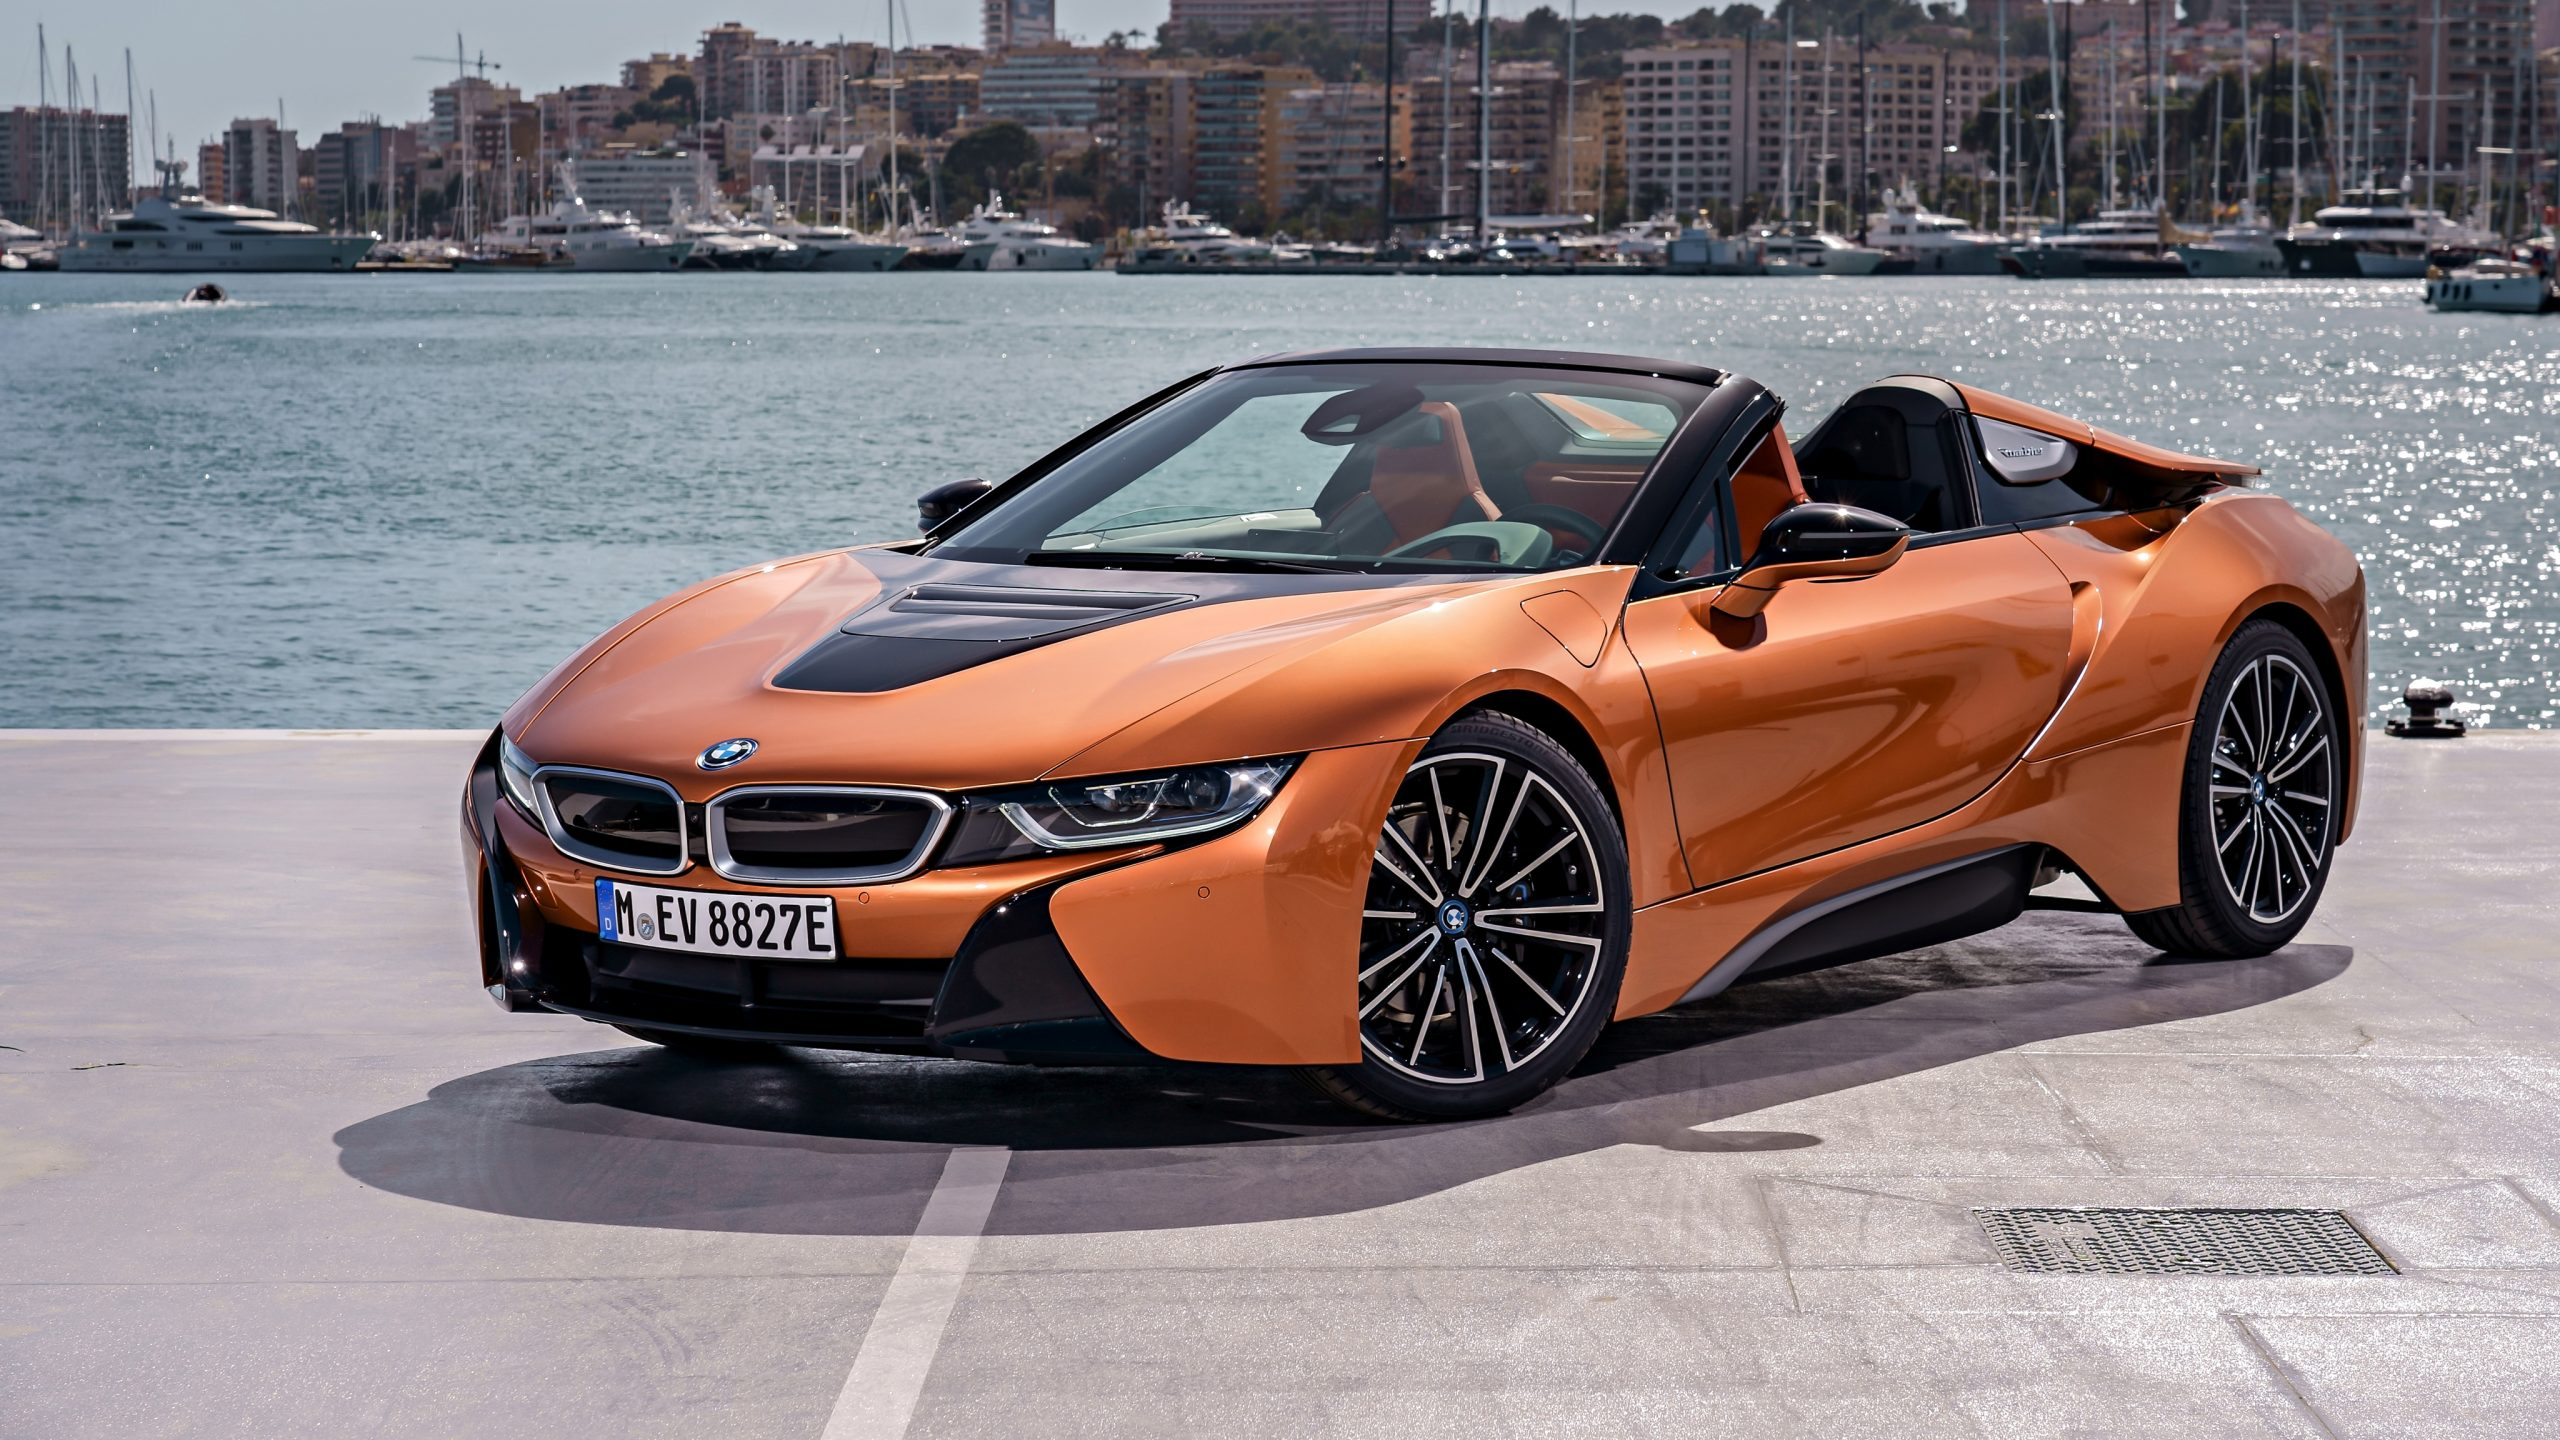 2018 Bmw I8 Roadster Wallpapers Supercars Net